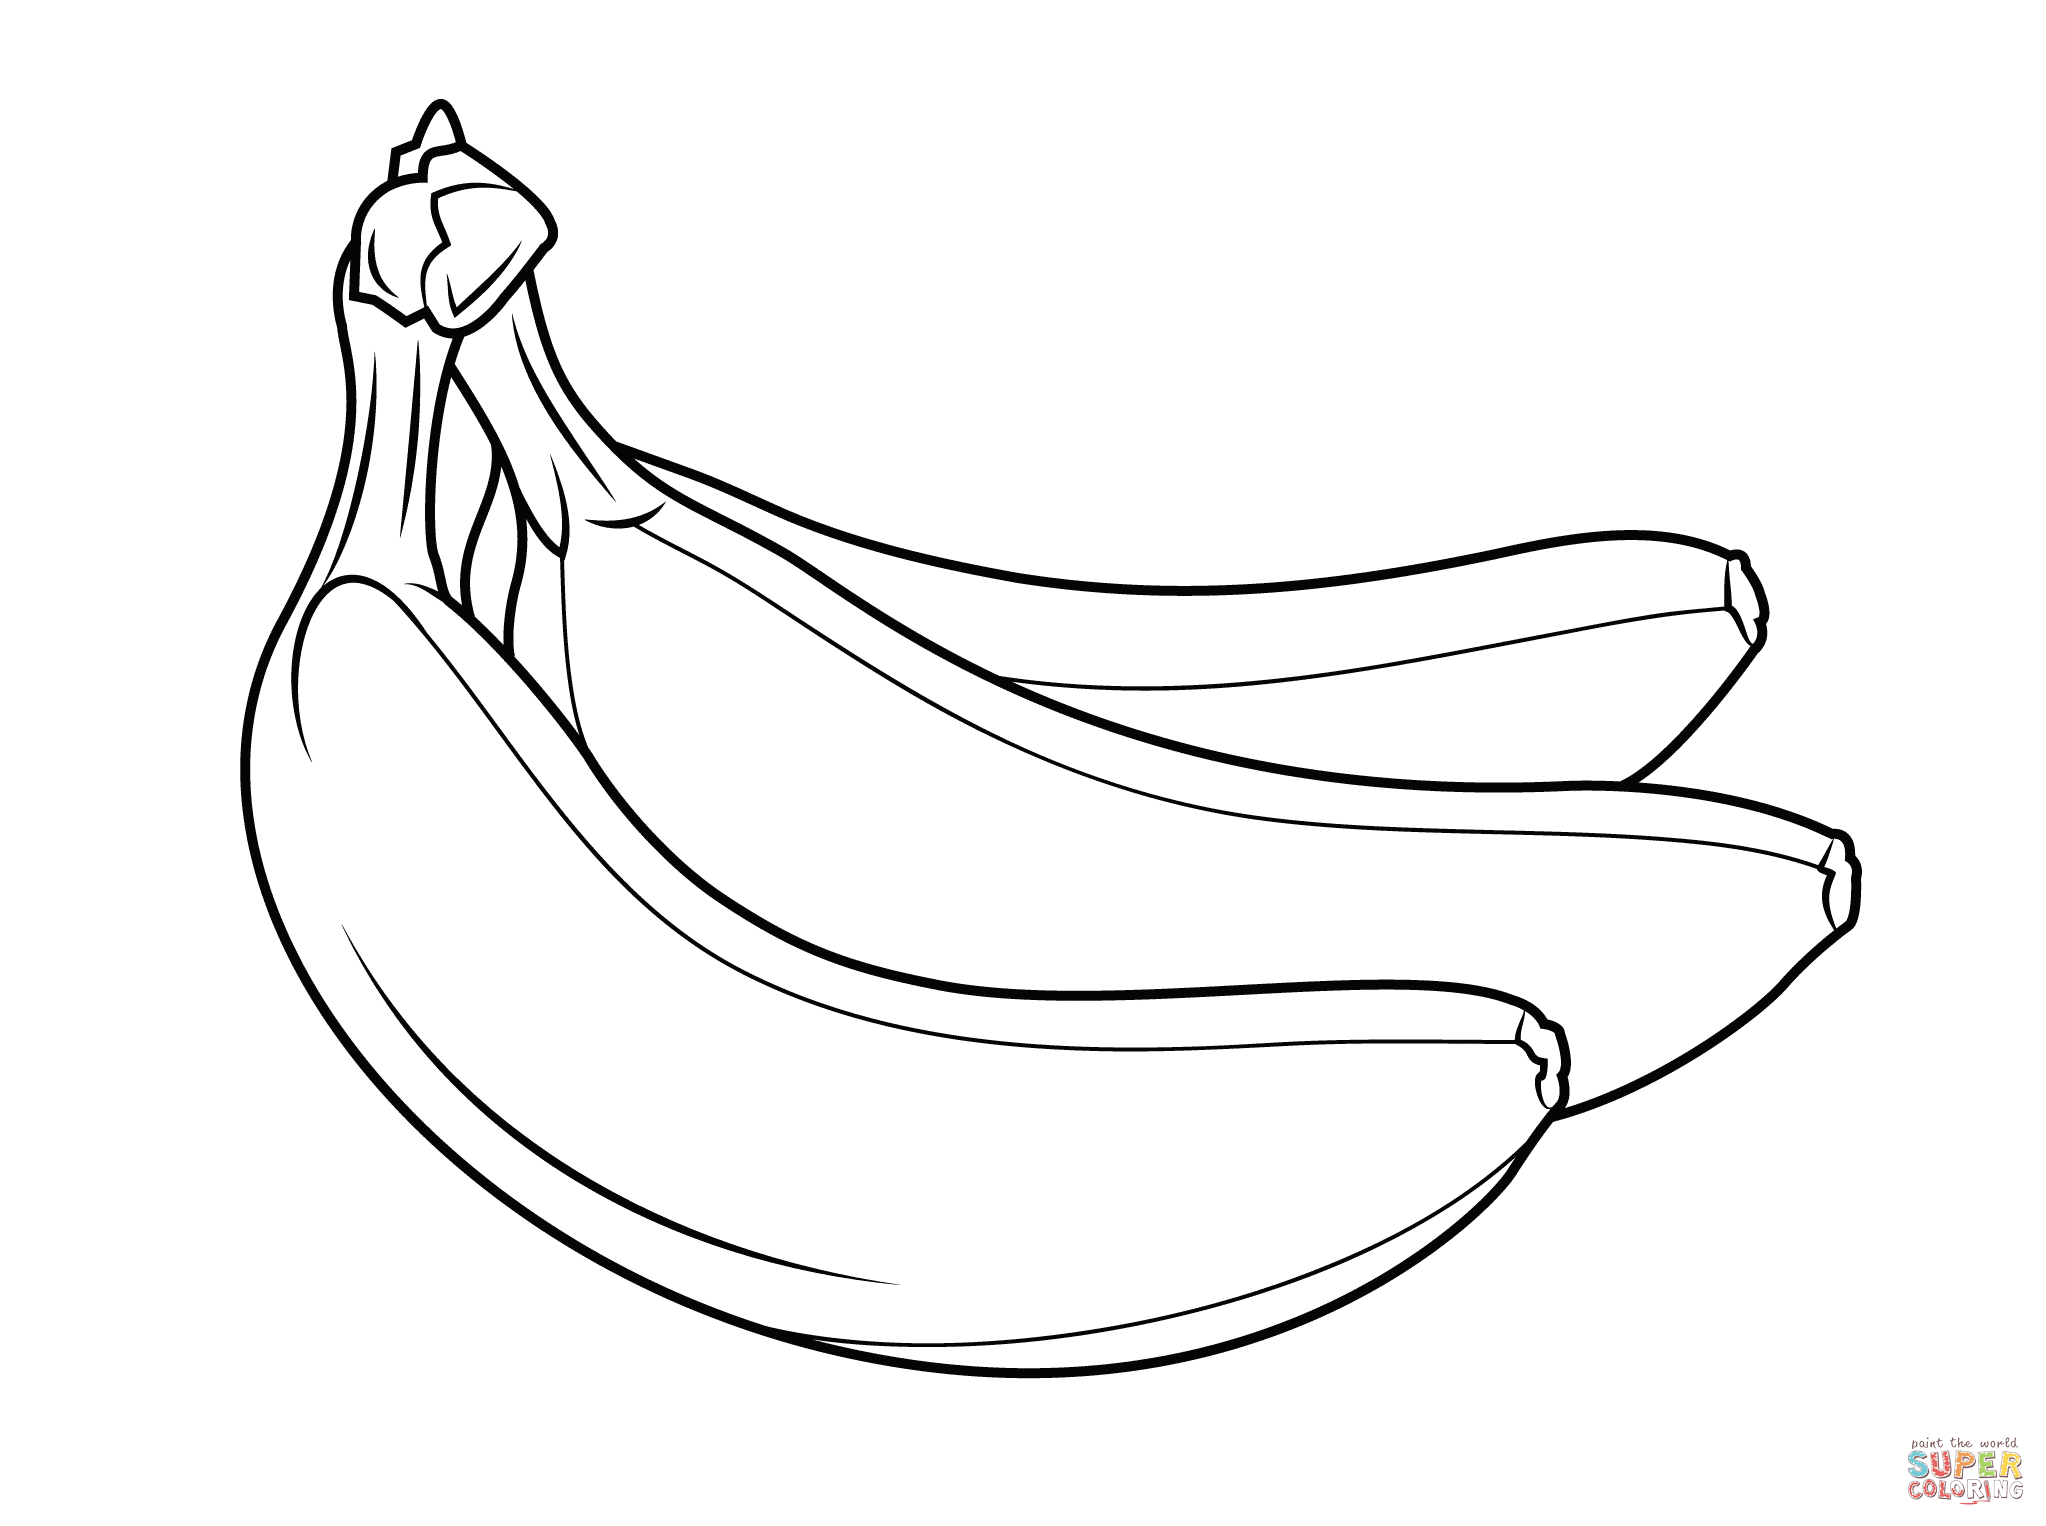 pictures of bananas to print printable banana coloring page sketch coloring page print of to bananas pictures